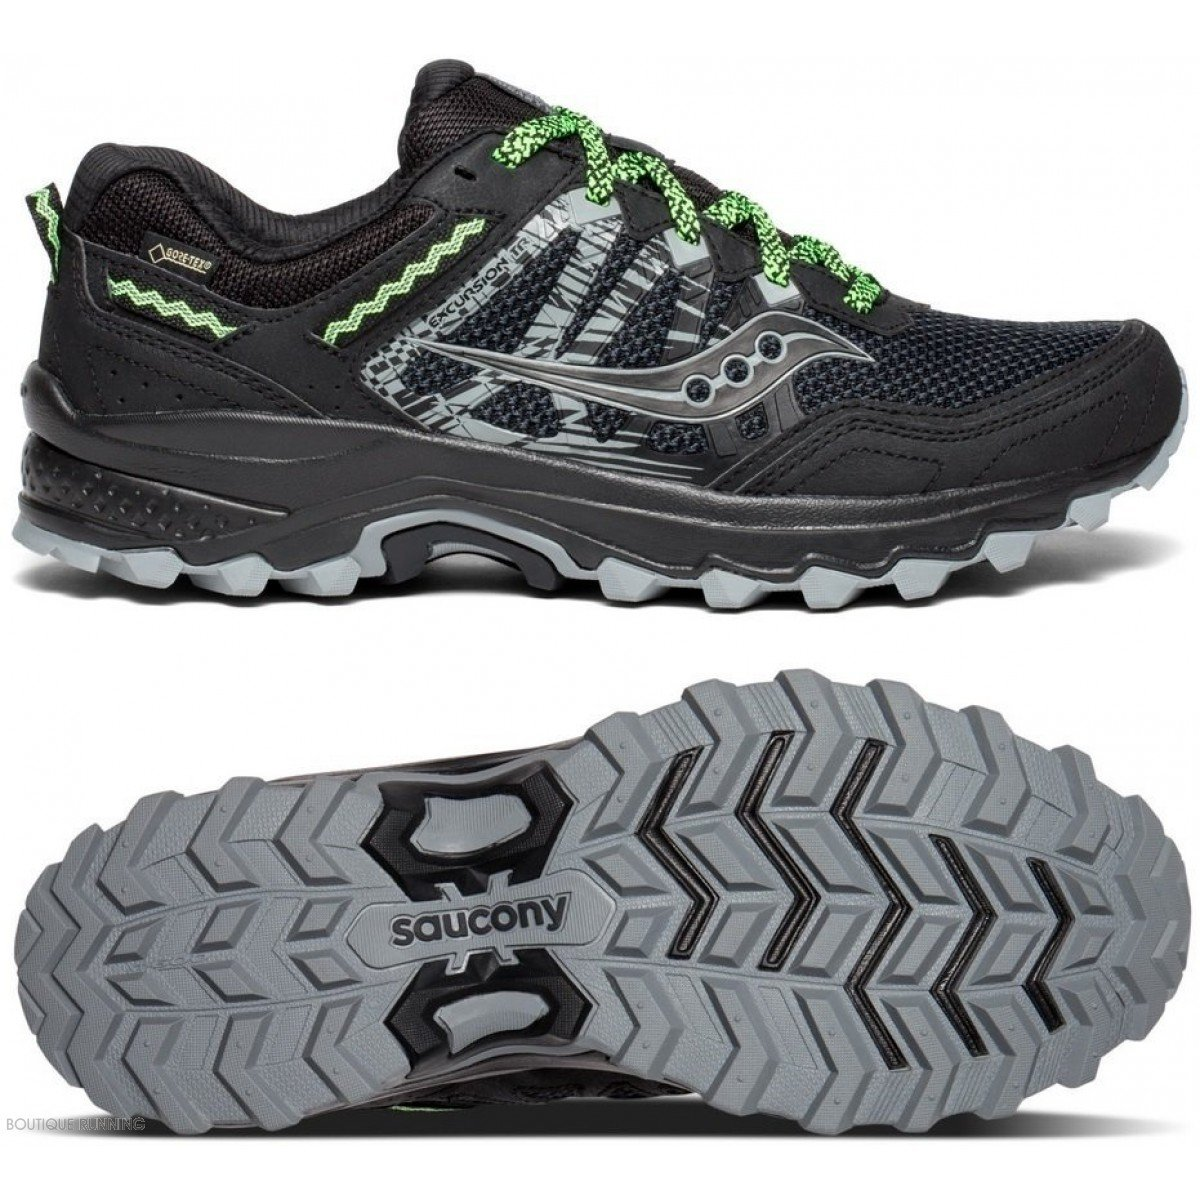 Running Homme Saucony Tr12 Gtx Chaussures Excursion De Trail S20453 O0Pkwn